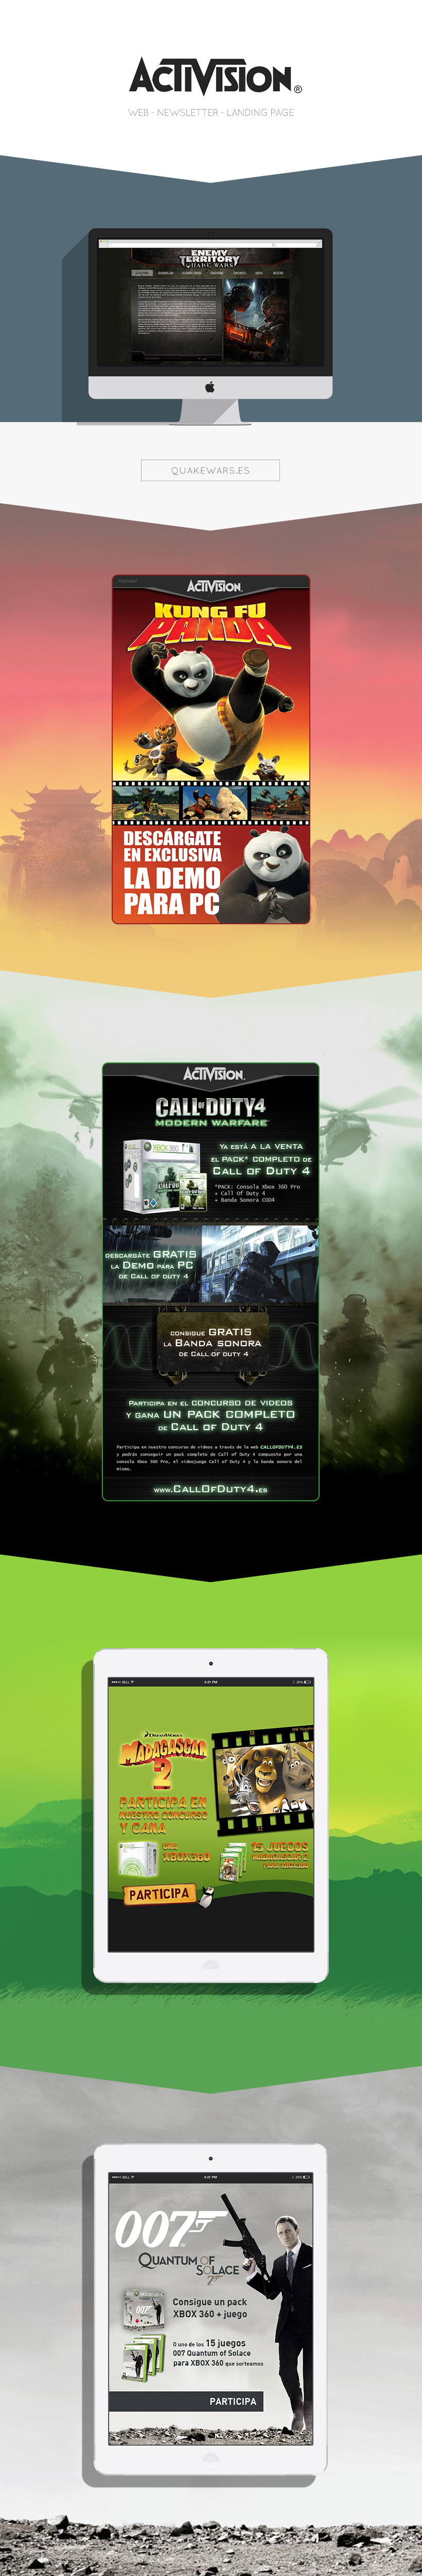 Activision - Web, Newsletters y Landing pages -1